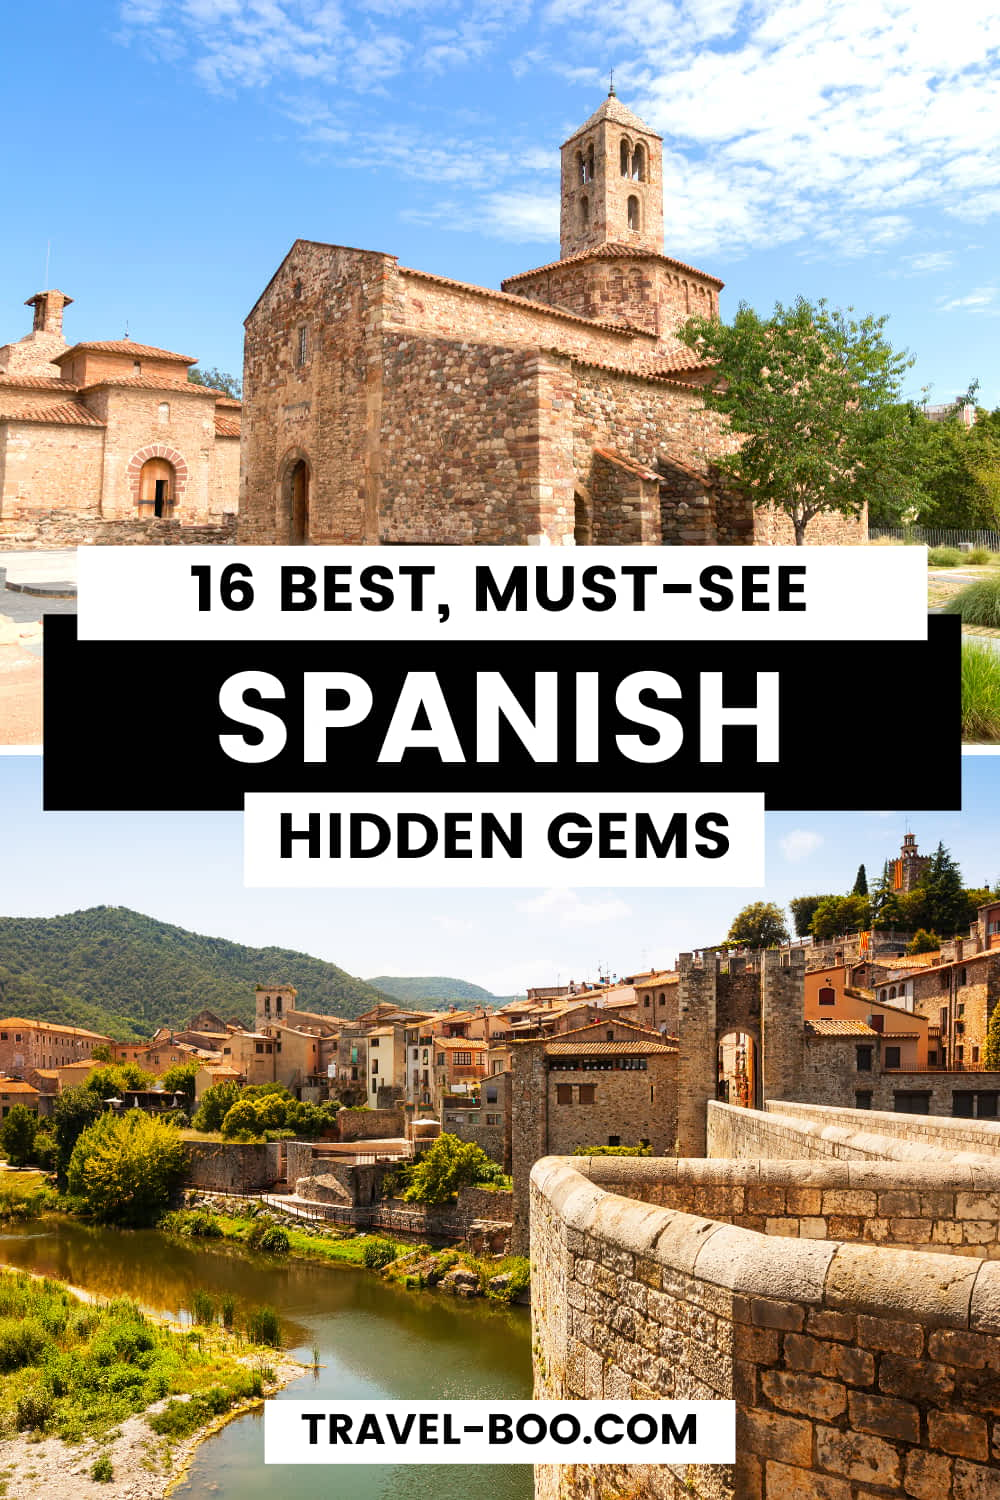 16 Best, Must-See Spanish Hidden Gems